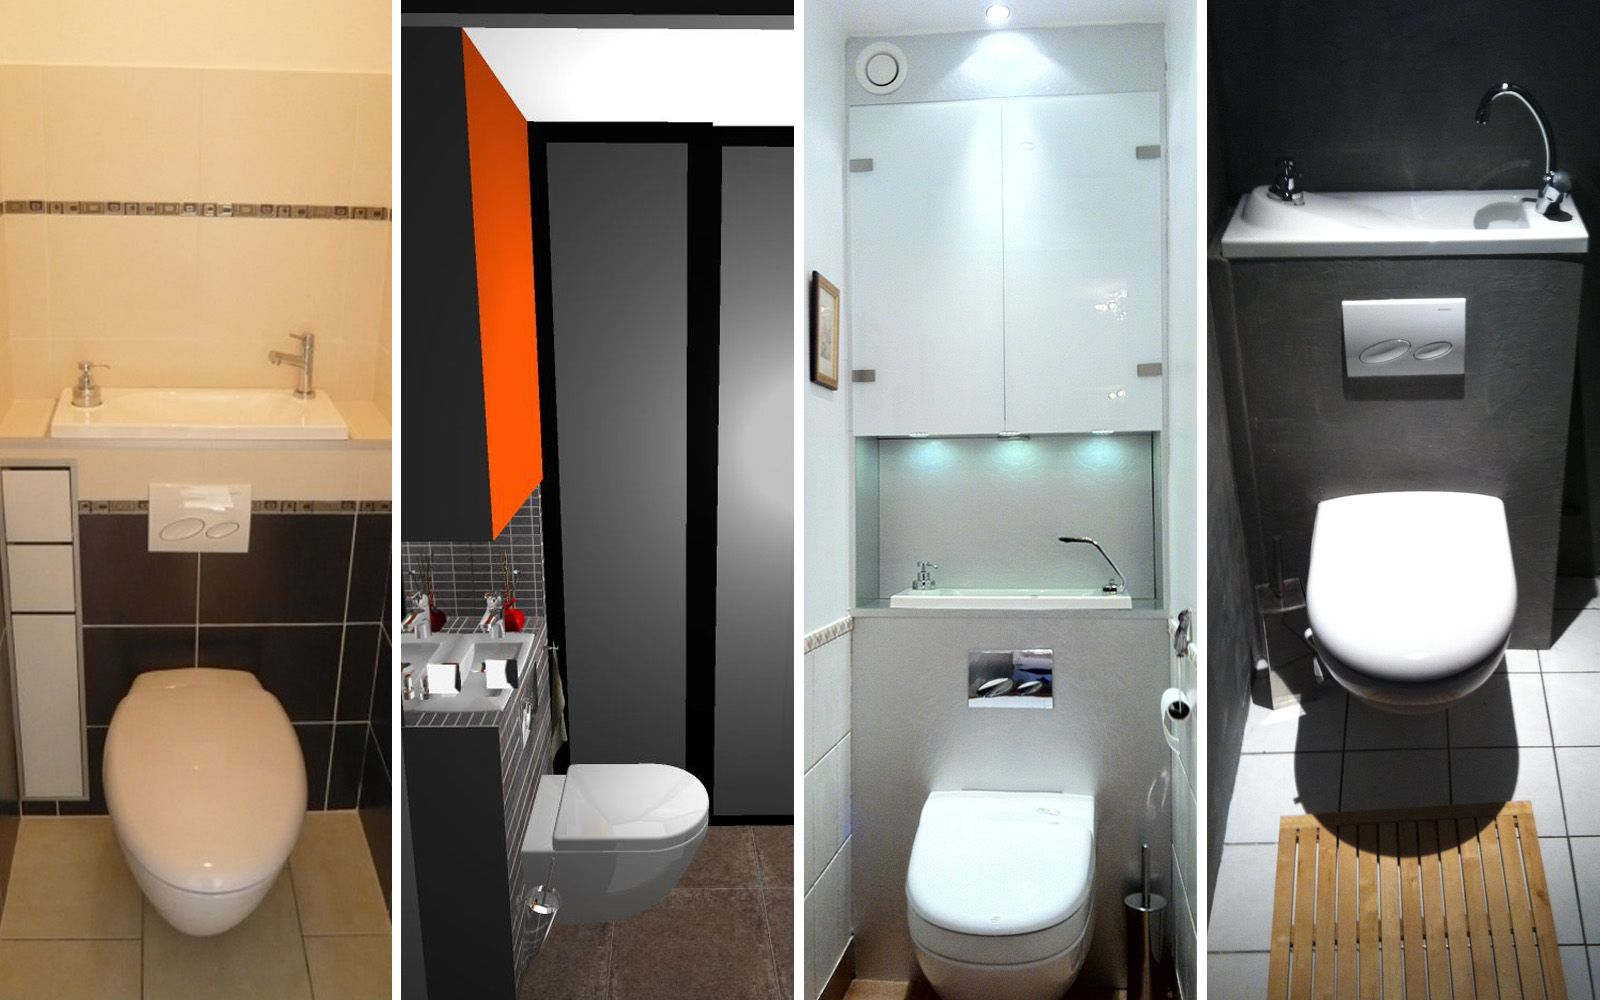 Laves mains sur wc suspendus wc pinterest projets for Amenagement wc suspendu